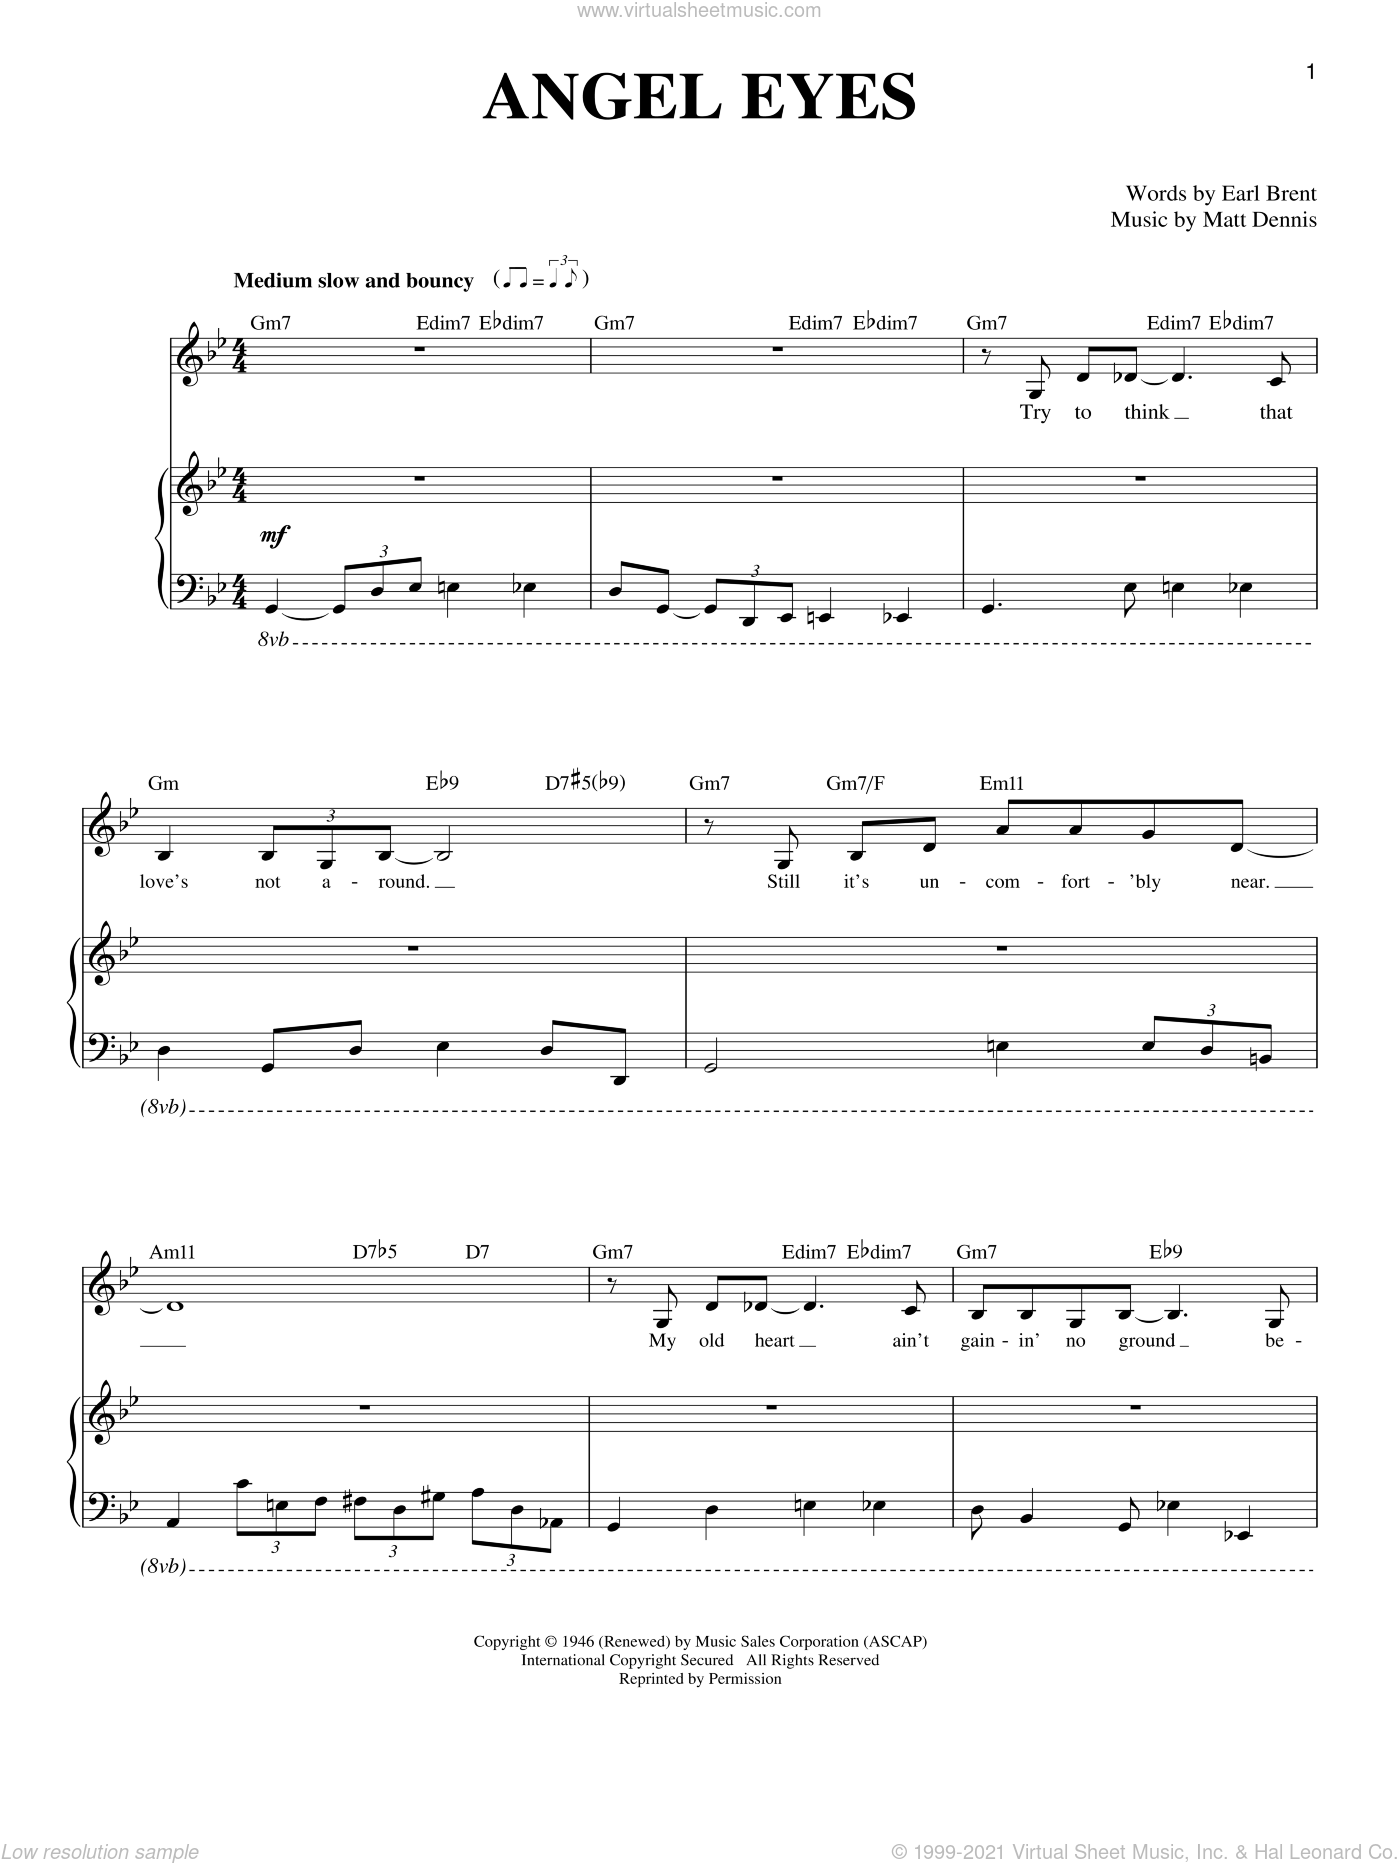 Angel Eyes sheet music for voice and piano by Matt Dennis and Earl Brent, intermediate skill level